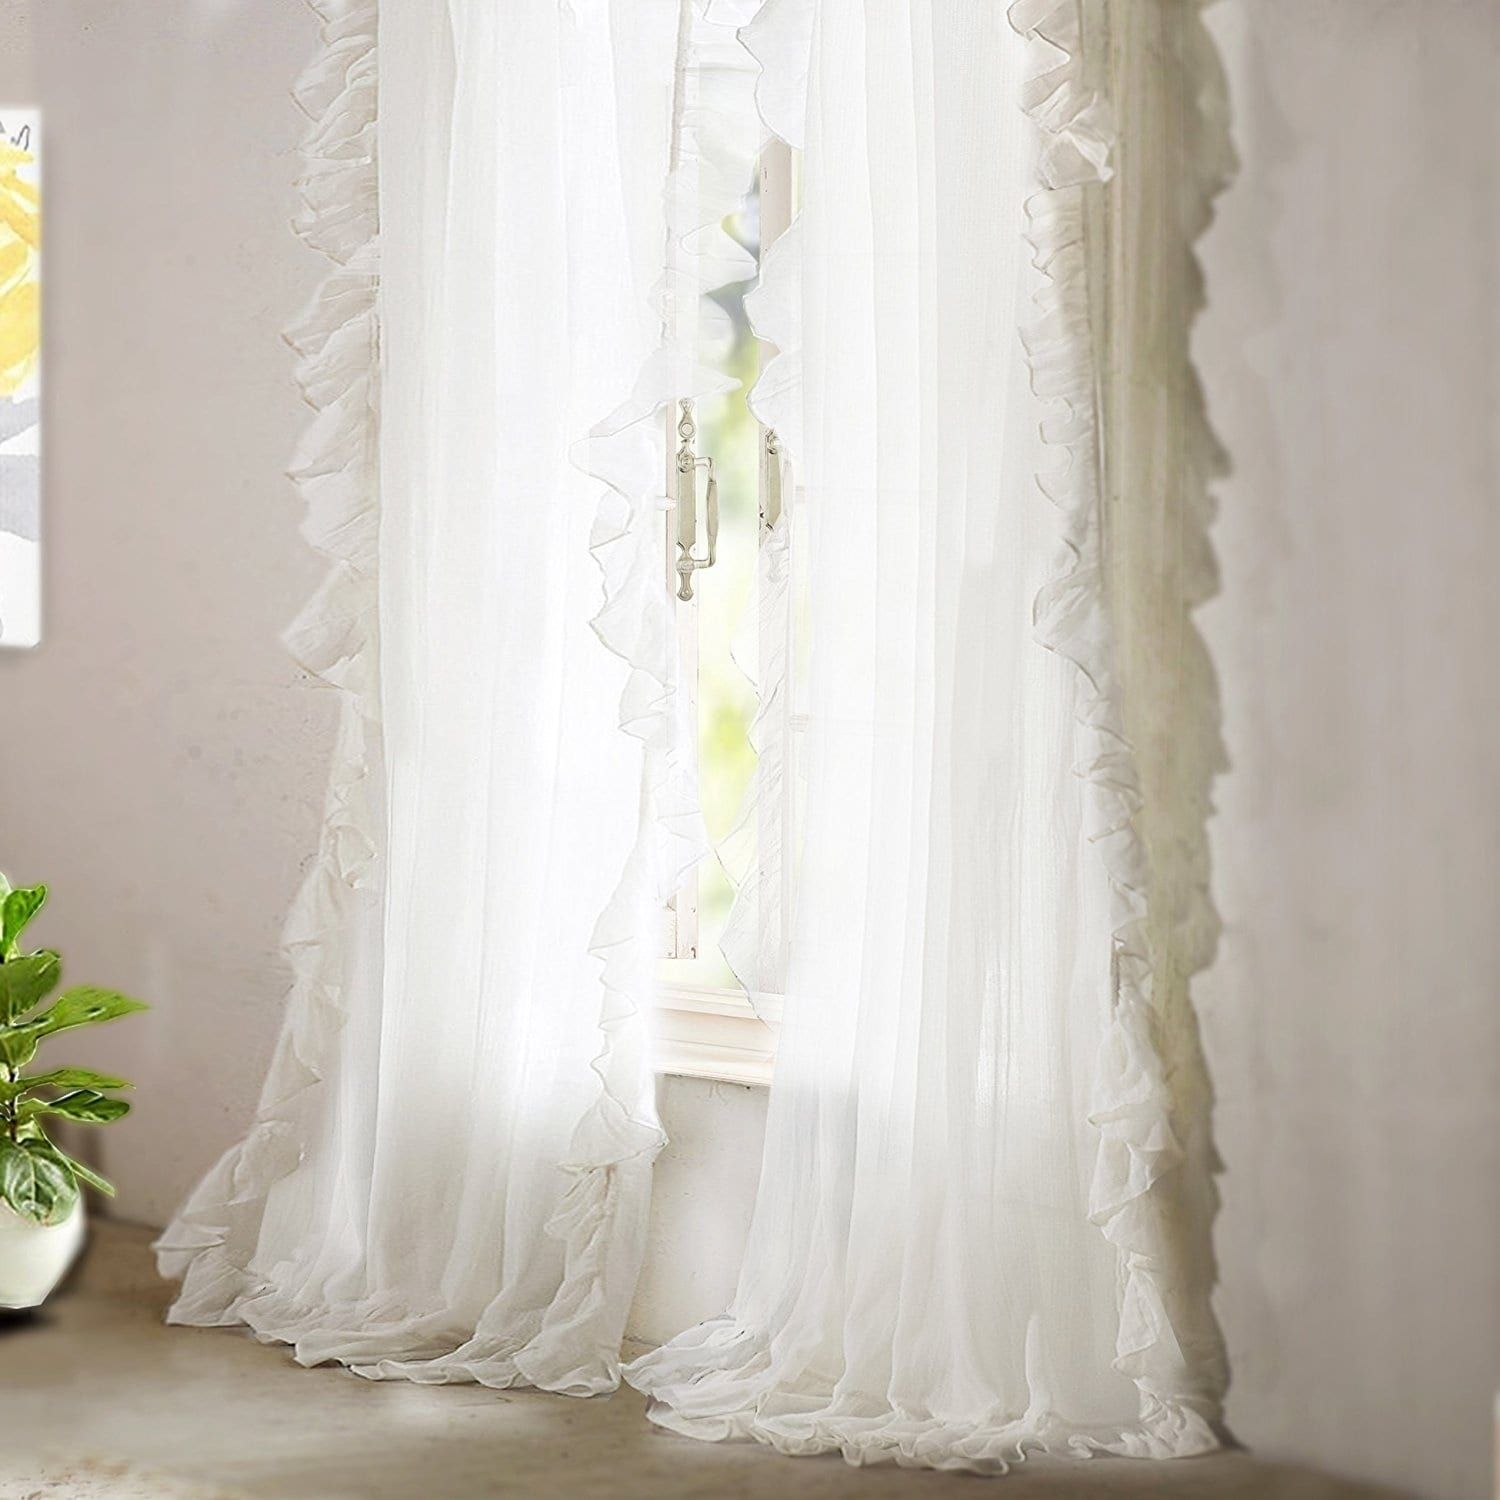 Drfitaway 2 Panels Sophie Sheer Voile Window Curtains With Regard To Sheer Voile Waterfall Ruffled Tier Single Curtain Panels (View 10 of 20)